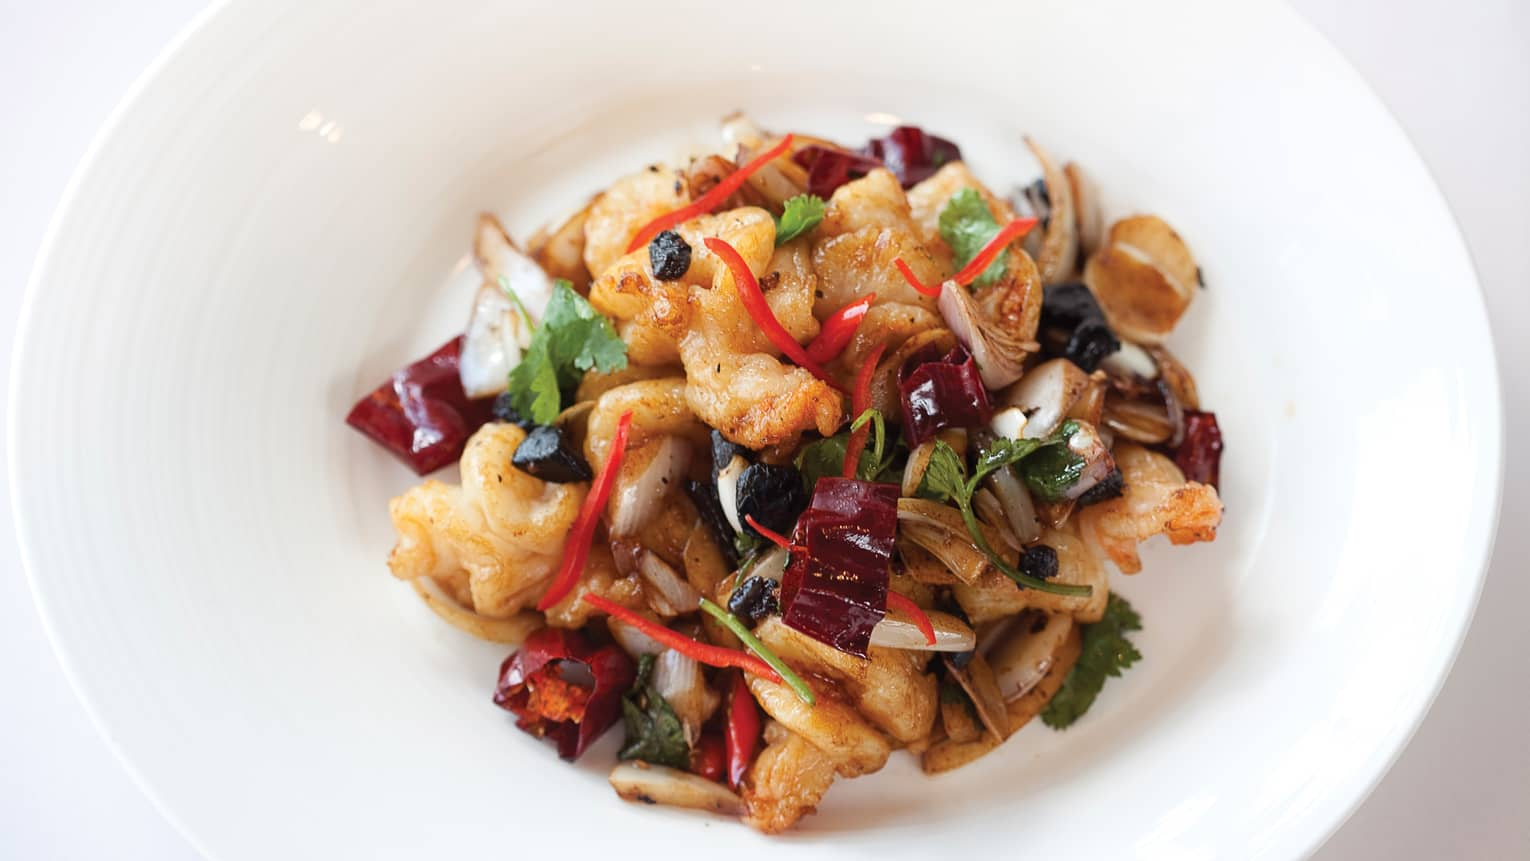 Wok-fried prawns with vegetables in white dish